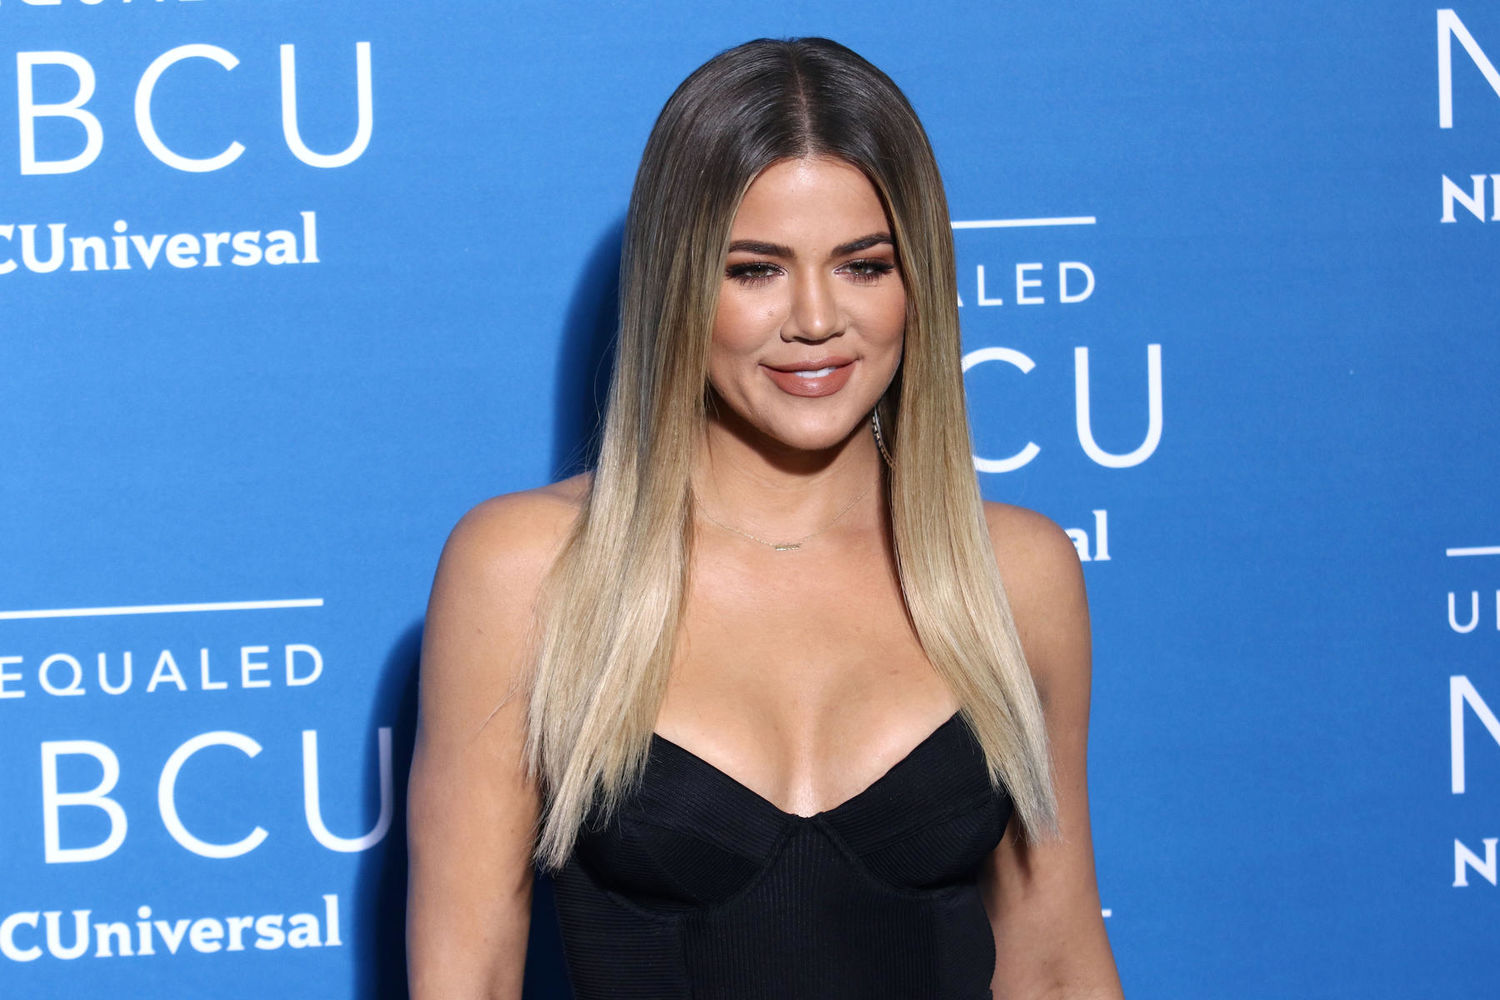 Khloe Kardashian Confirms She is 6 Months Pregnant and Reveals Possible Baby Name